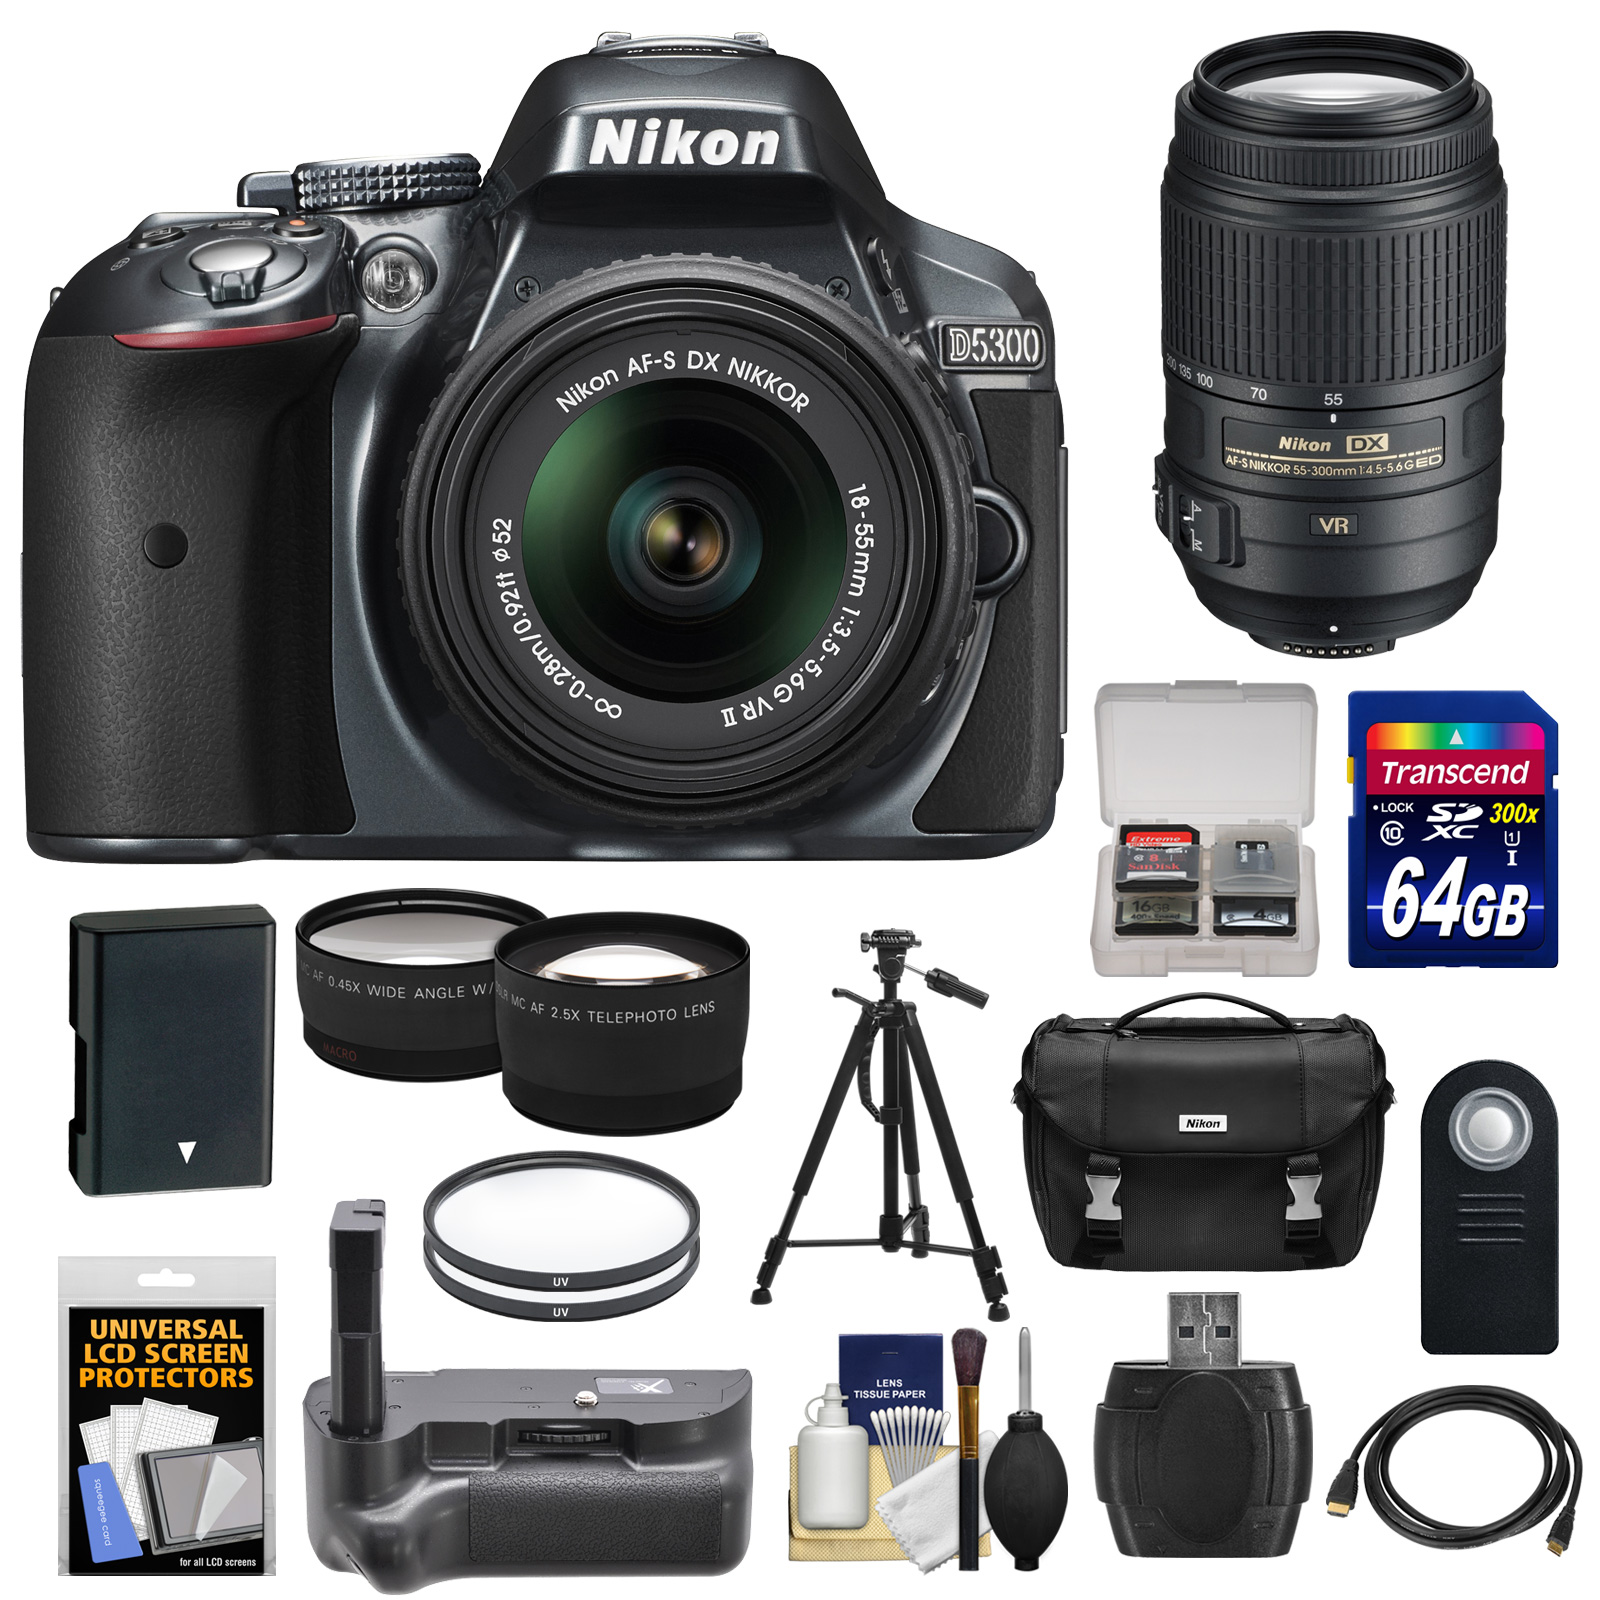 Nikon D5300 Digital SLR Camera & 18-55mm G VR DX II Lens (Grey) with 55-300mm VR Lens + 64GB Card + Battery + Case + Grip + Tele/Wide Lens Kit